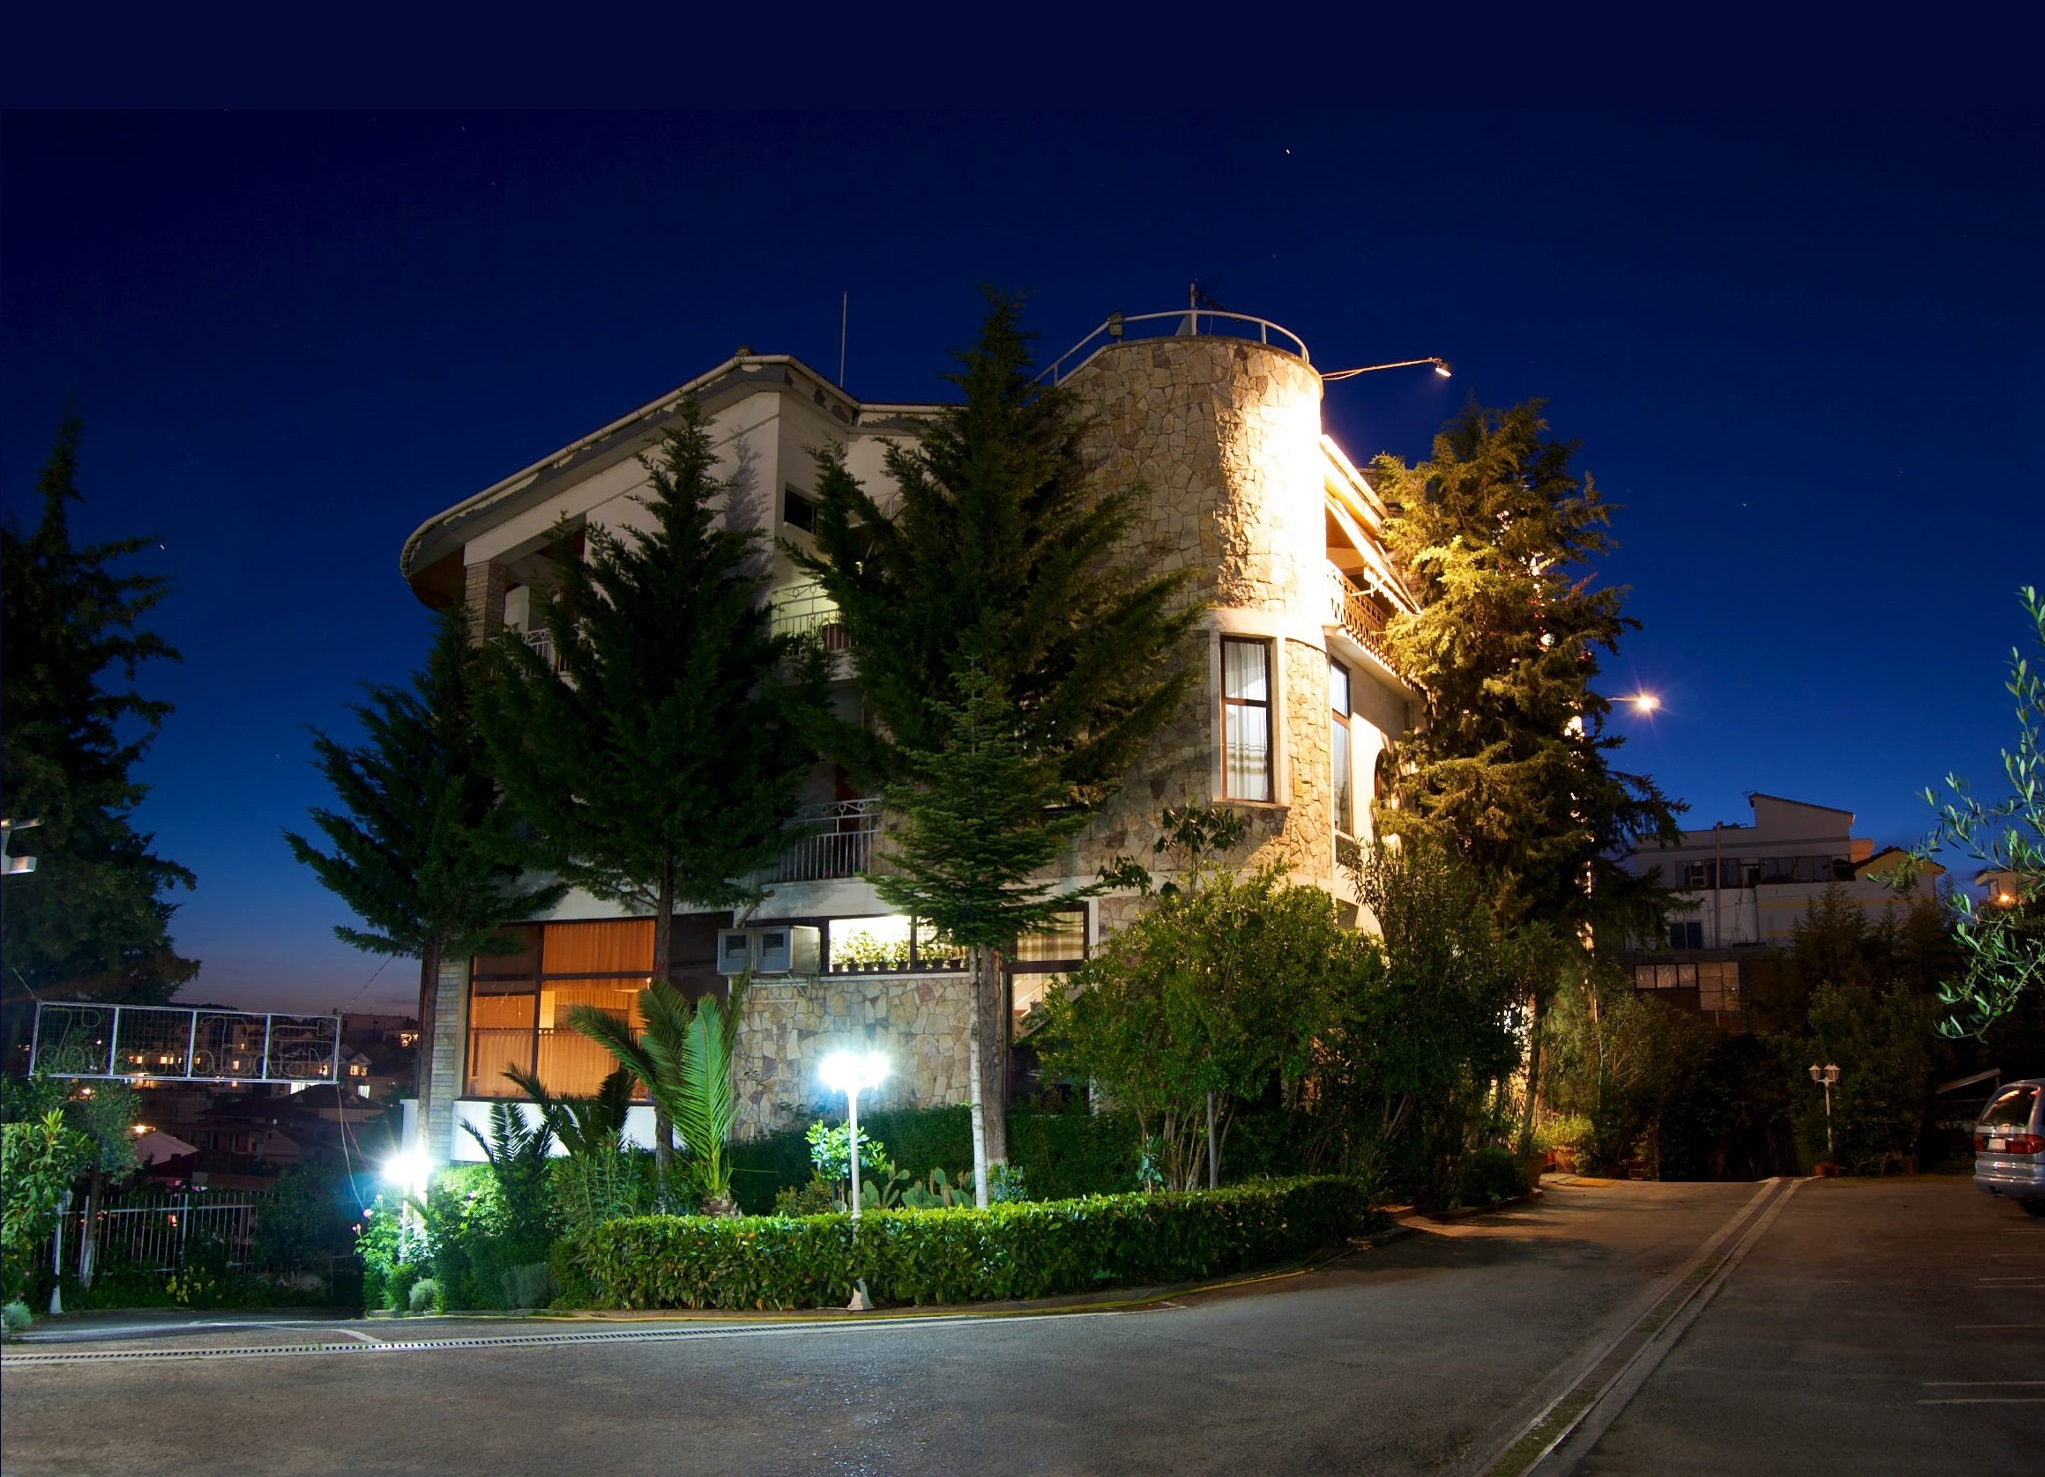 Standard Rooms Low Cost And Confortable In The Center Of: HOTEL BARON TIRANA BUDGET LOW COST PRICE HOTEL COMFORTABLE